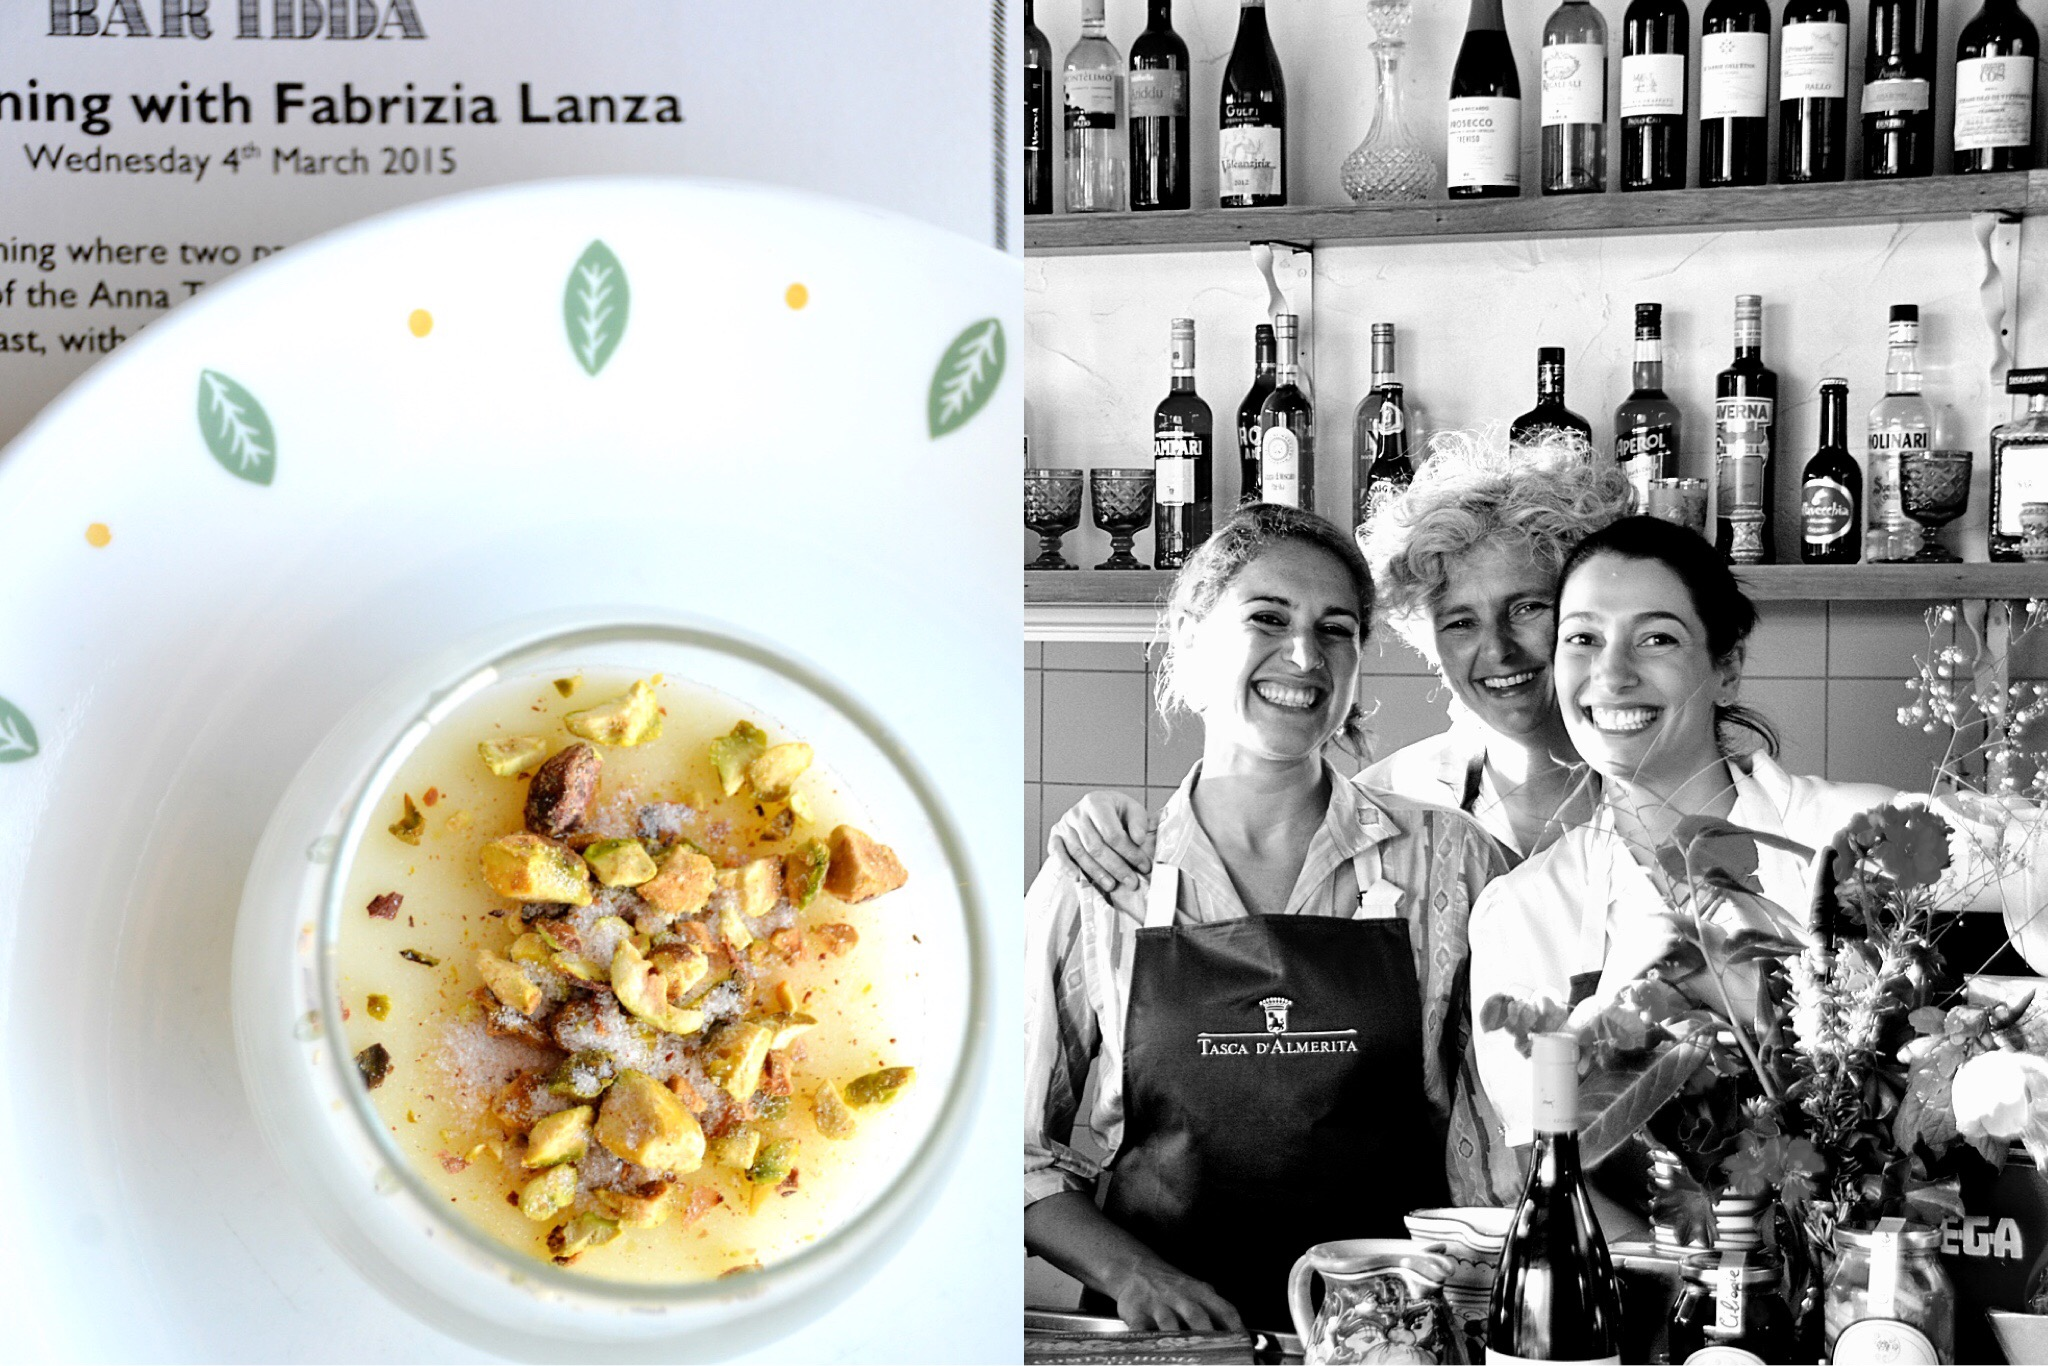 Fabrizia Lanza cooking at Bar Idda – italy on my mind